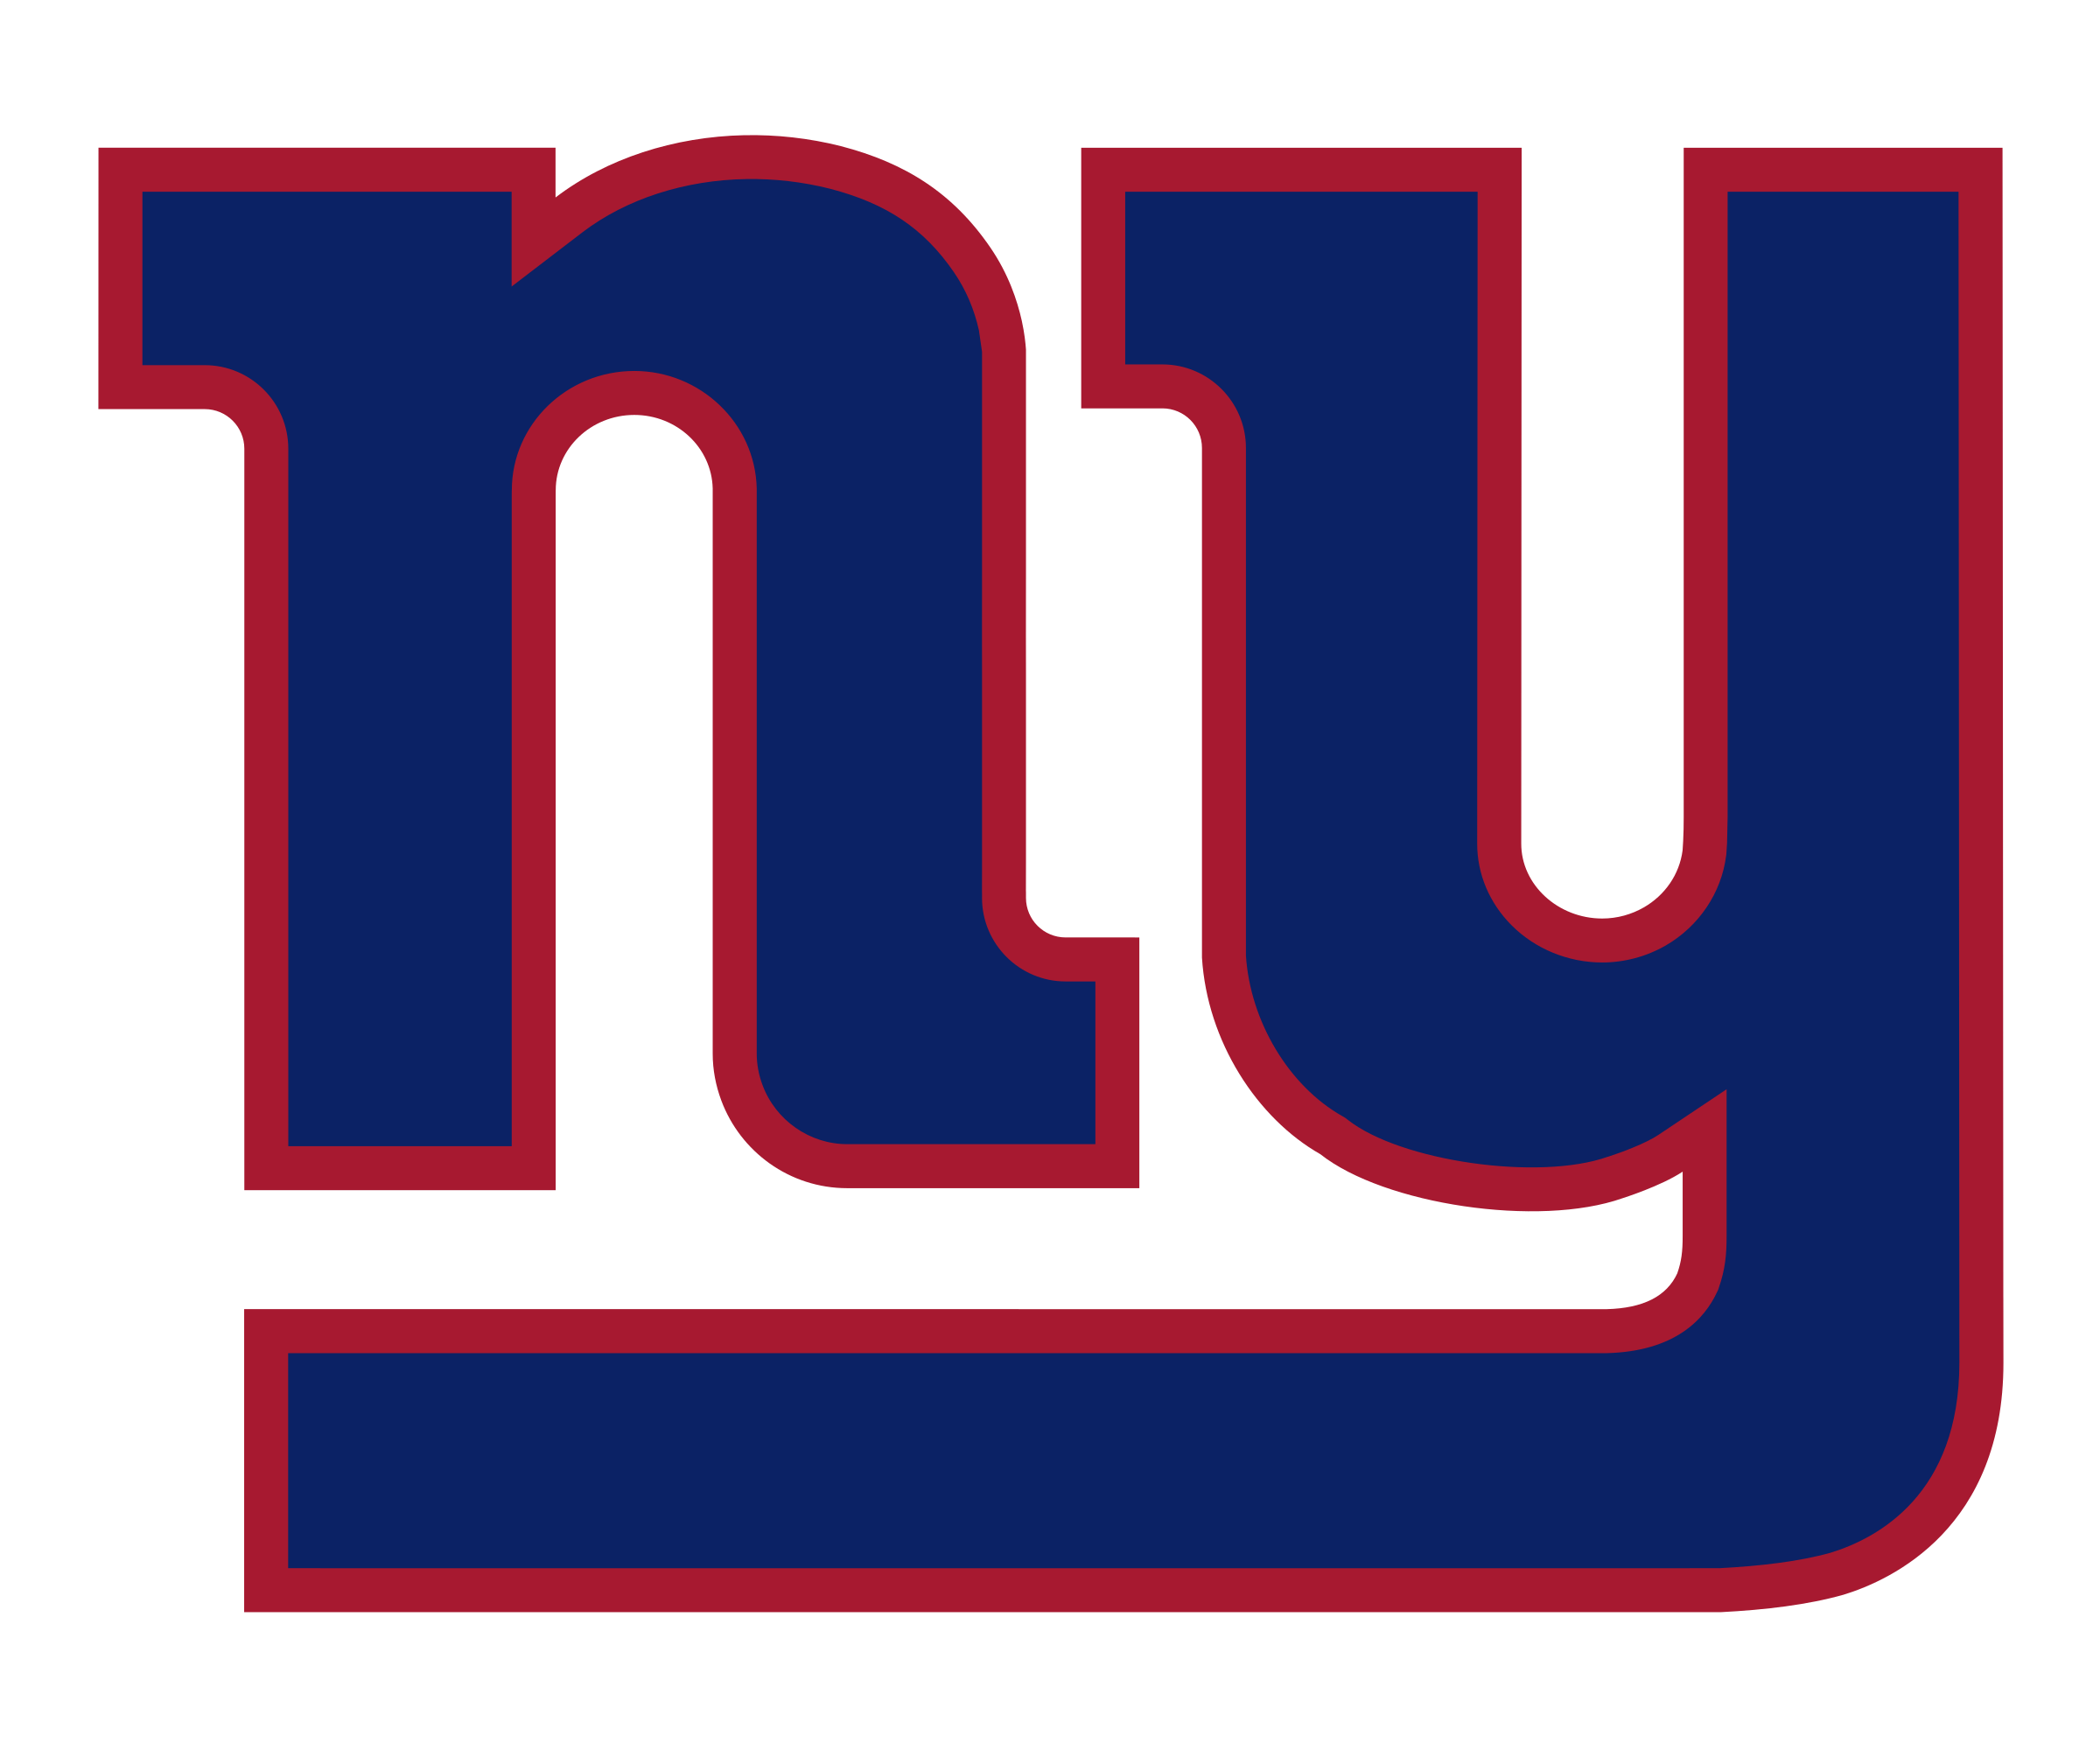 new york giants logo png transparent svg vector freebie supply rh freebiesupply com giant bikes logo vector giant free vector